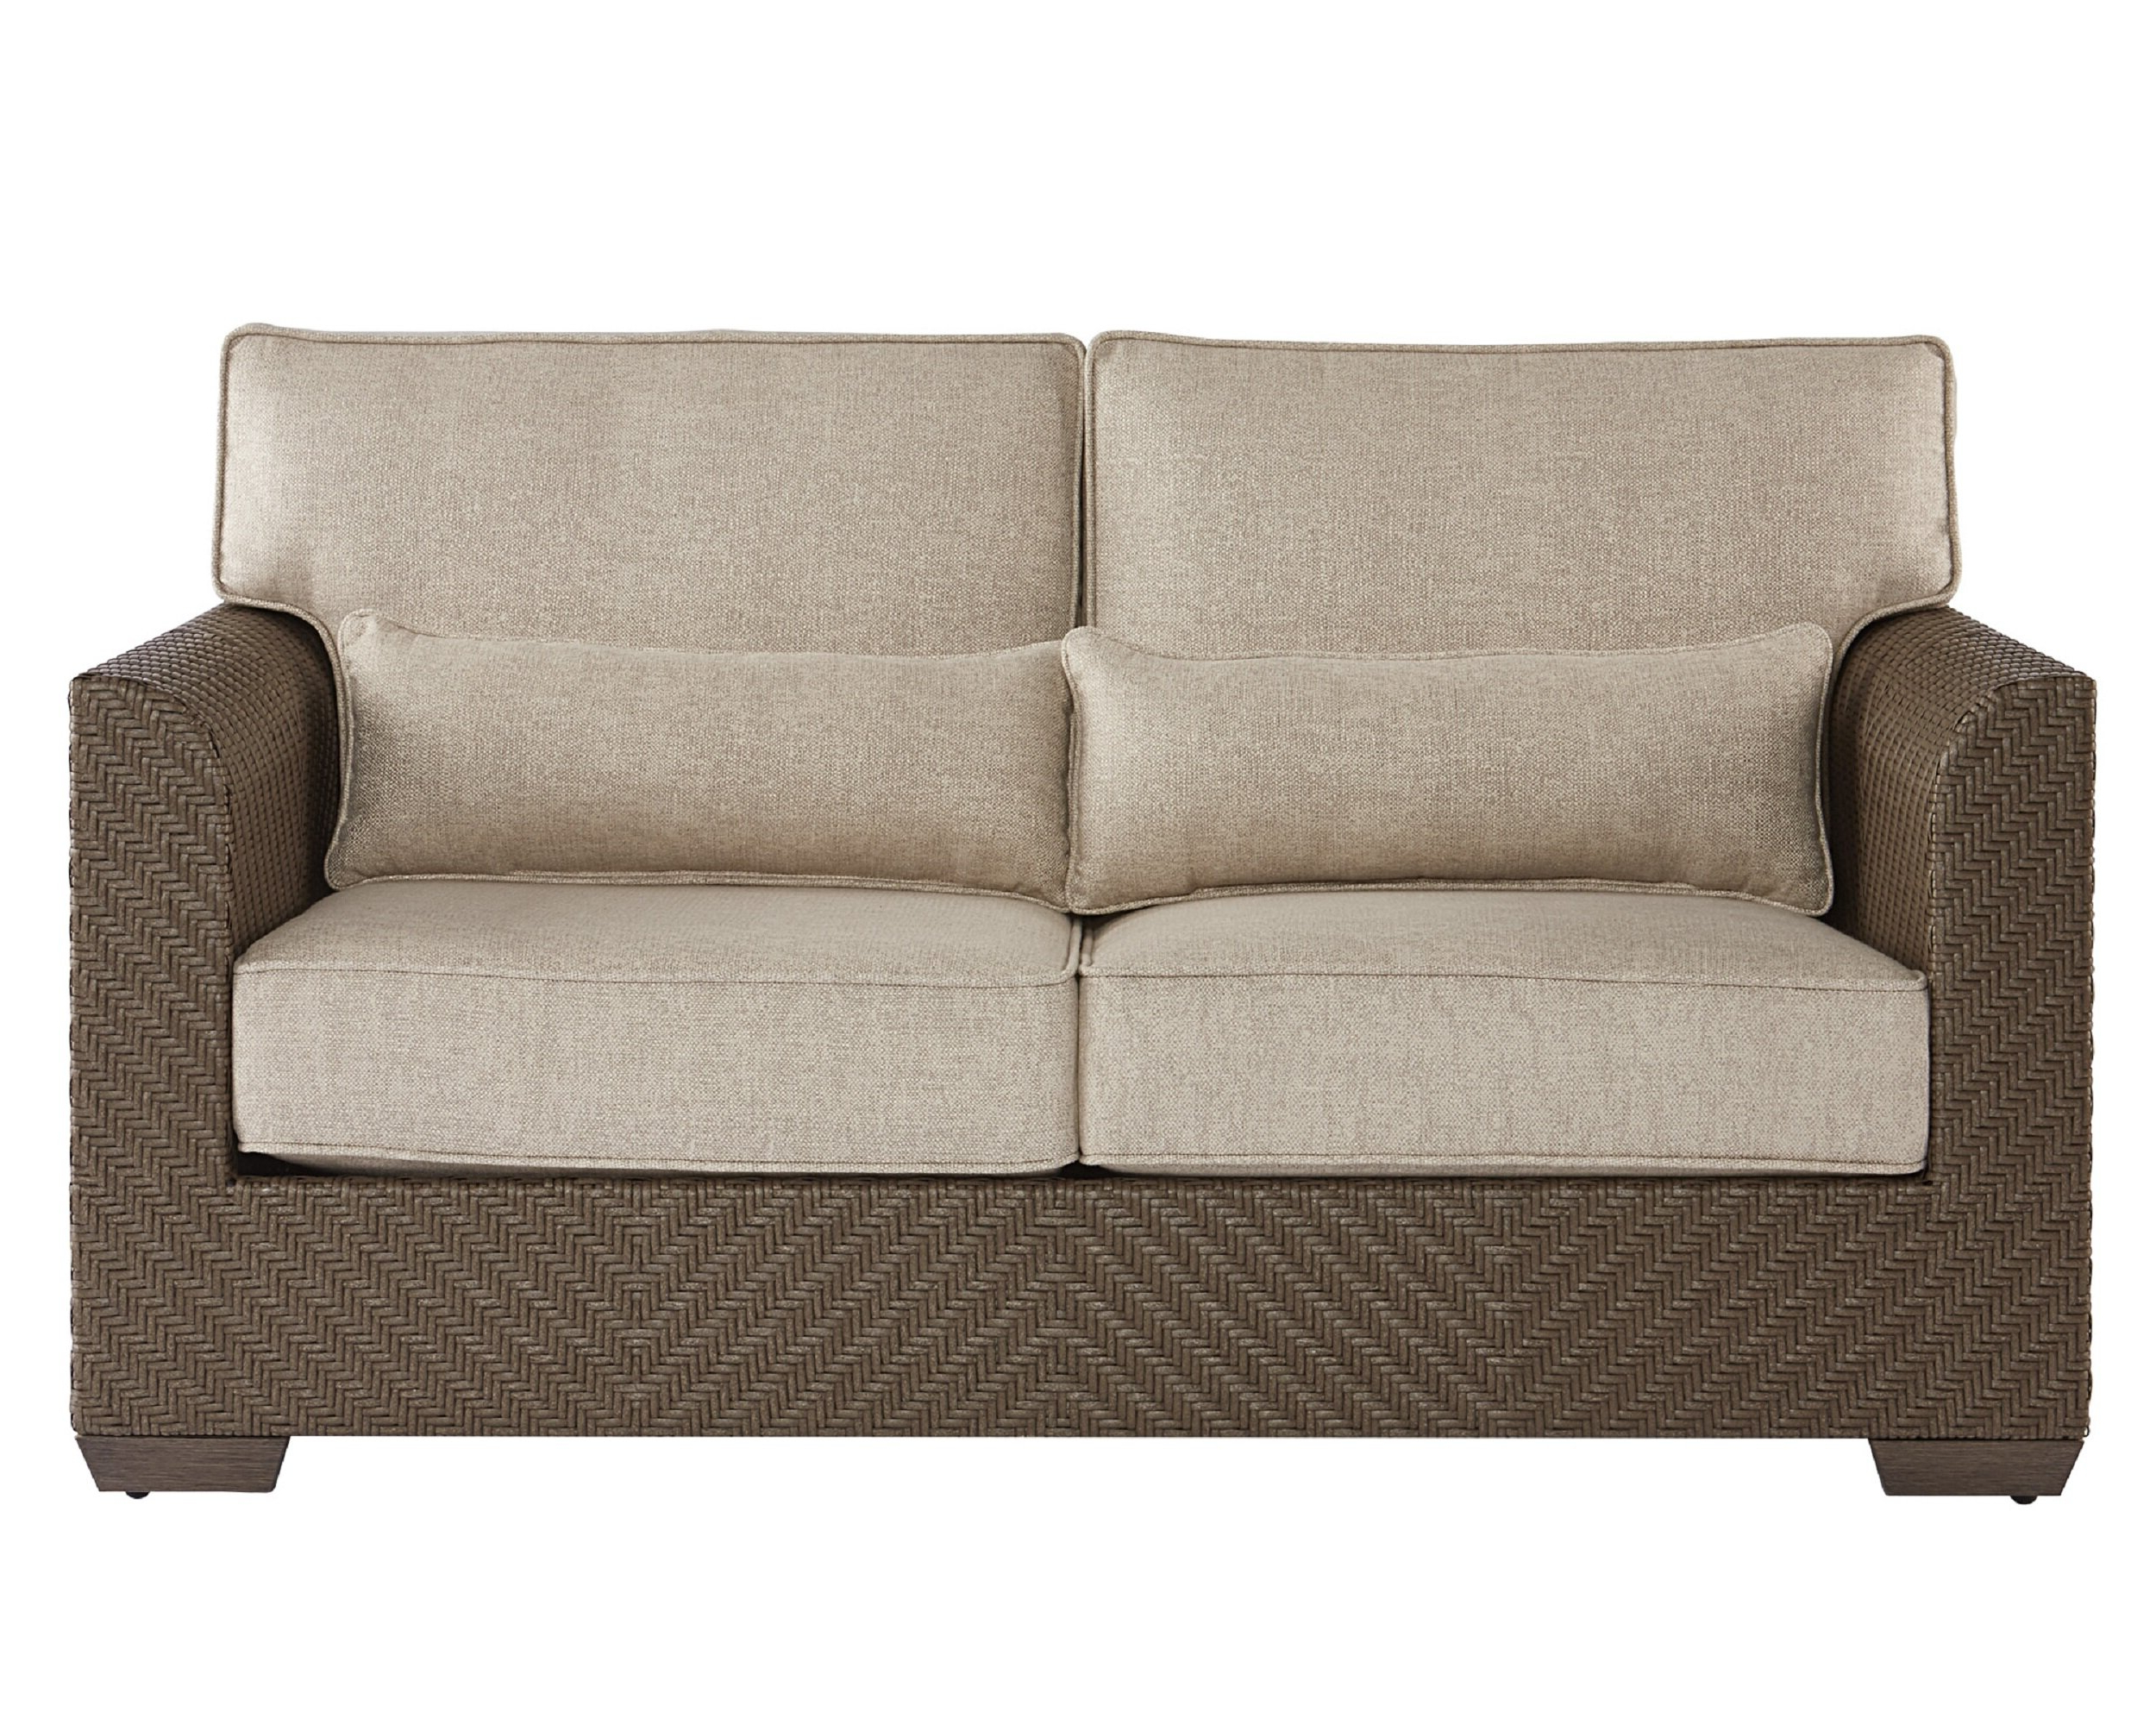 Astrid Wicker Patio Loveseat With Cushions Within Preferred Astrid Wicker Patio Sofas With Cushions (View 2 of 25)